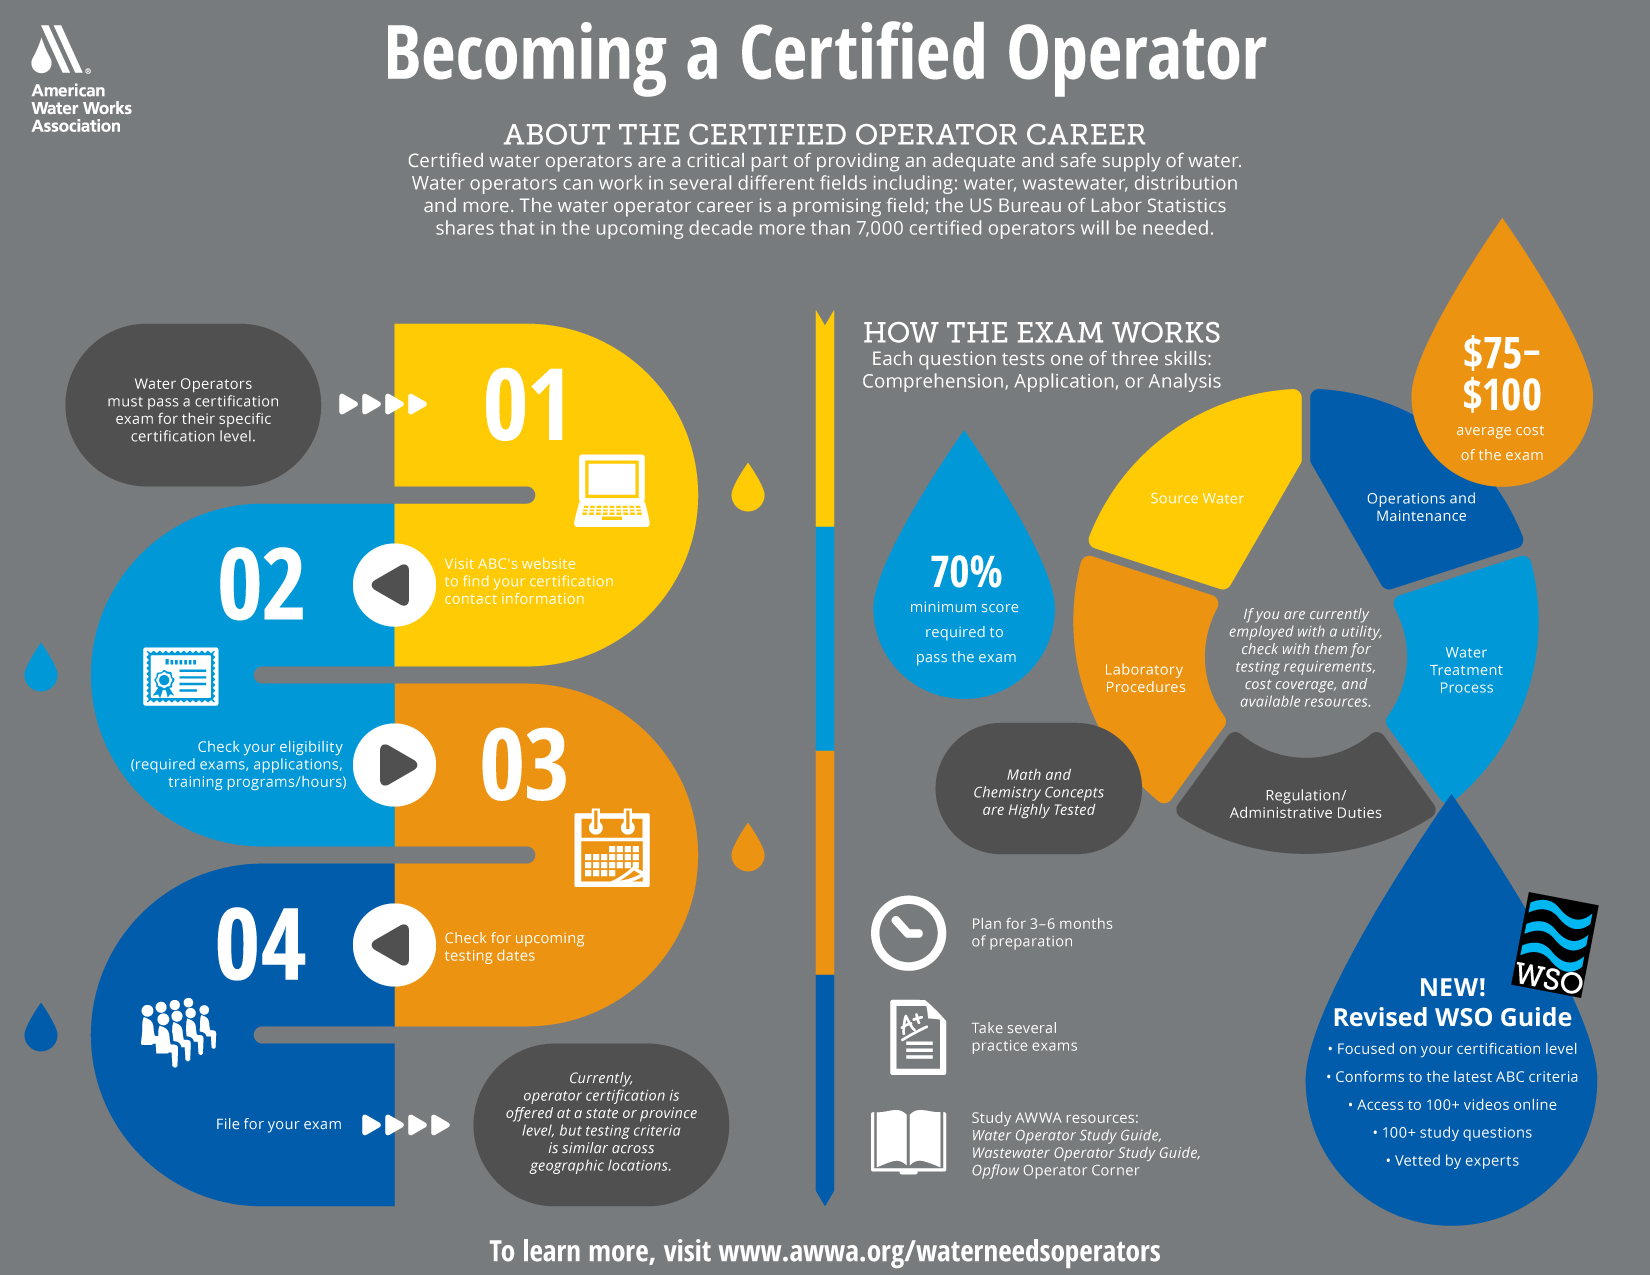 How to become a certified operator